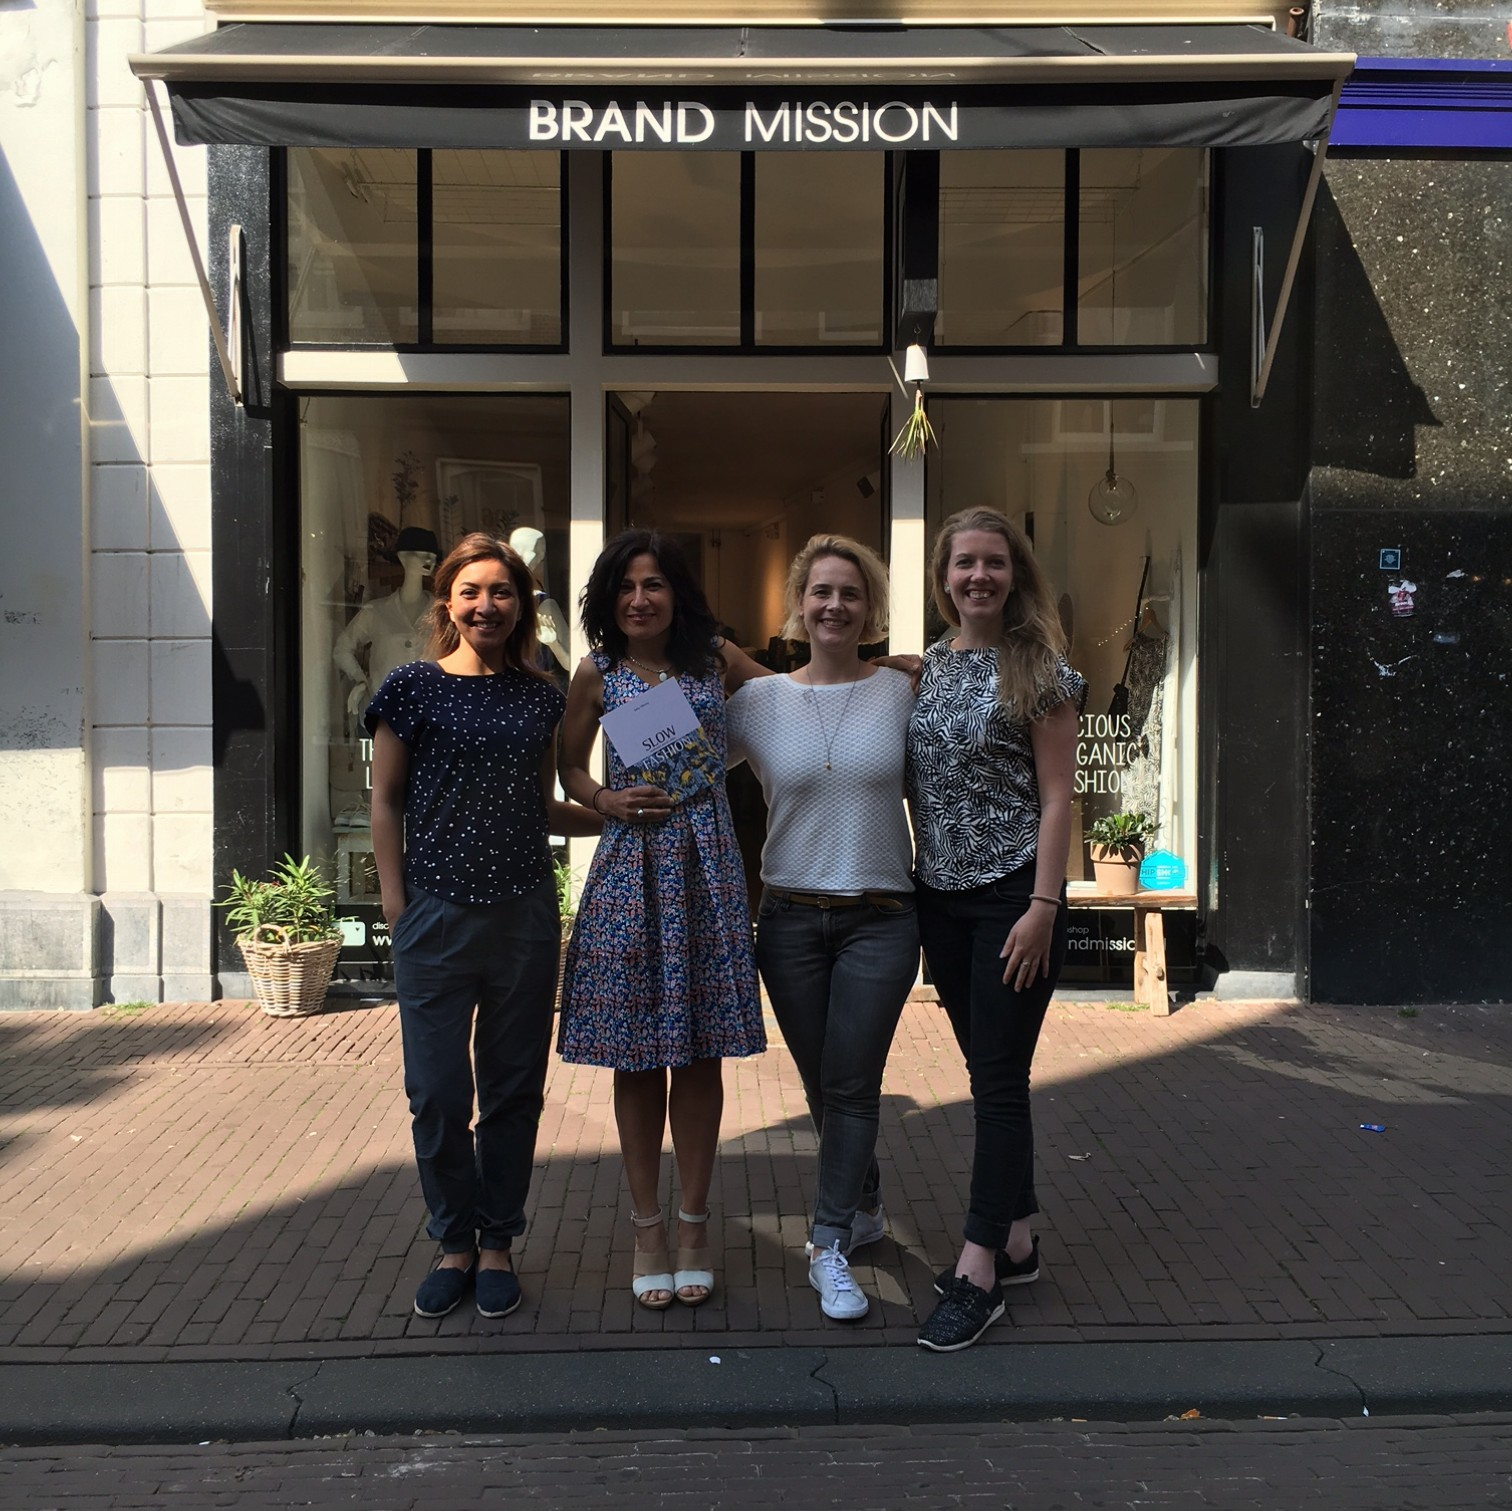 Slowfashion-Brandmission